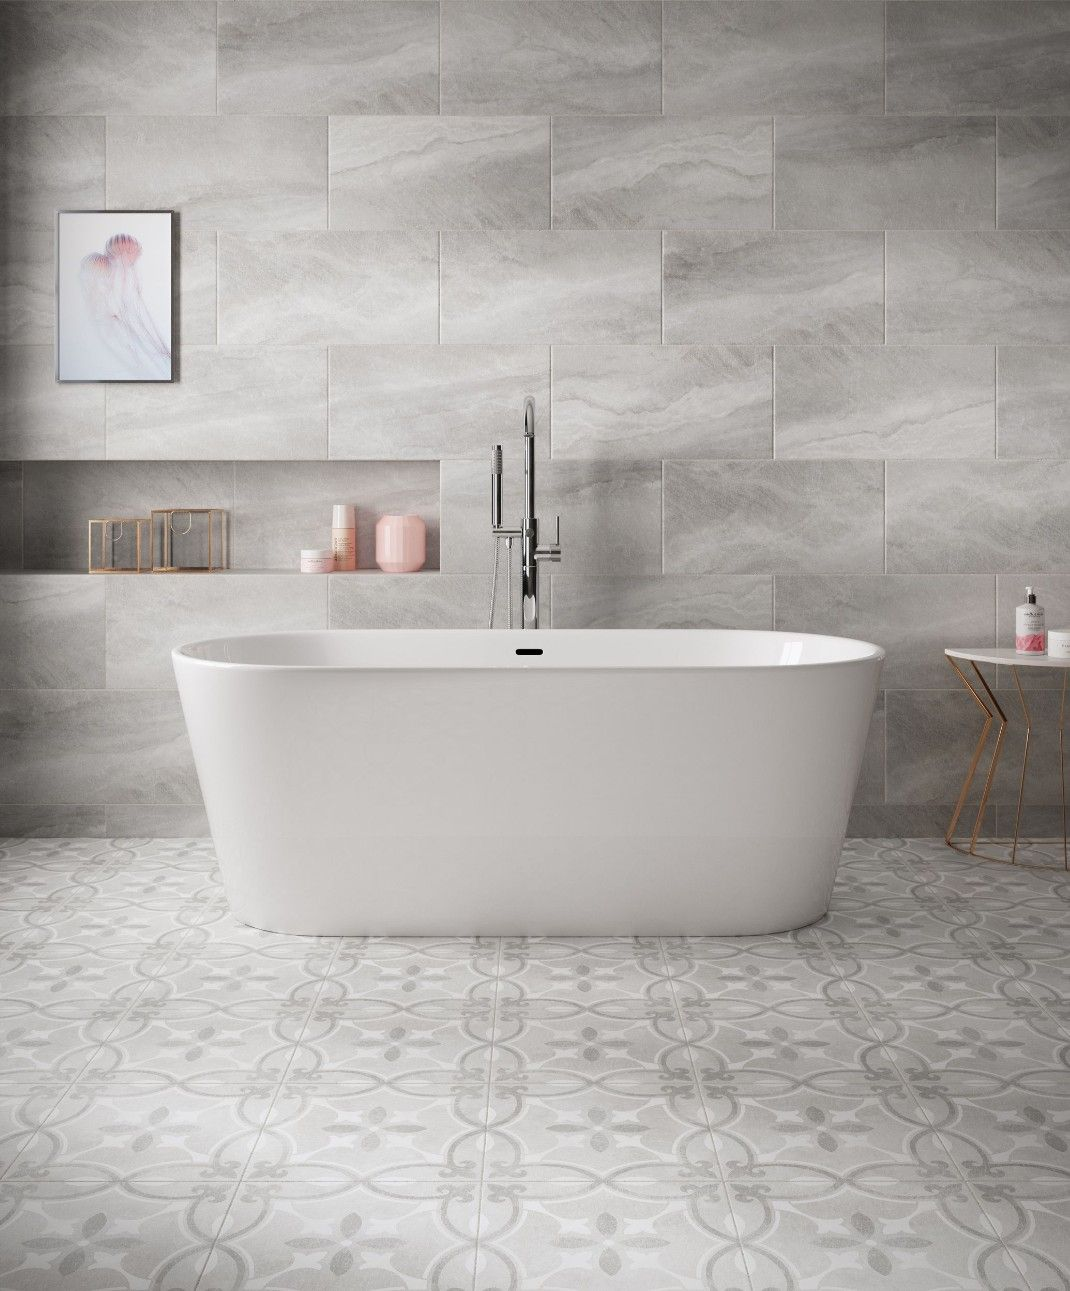 B Q Perla Feature Tile Feature Tiles Bathroom Flooring Bathtub Tile